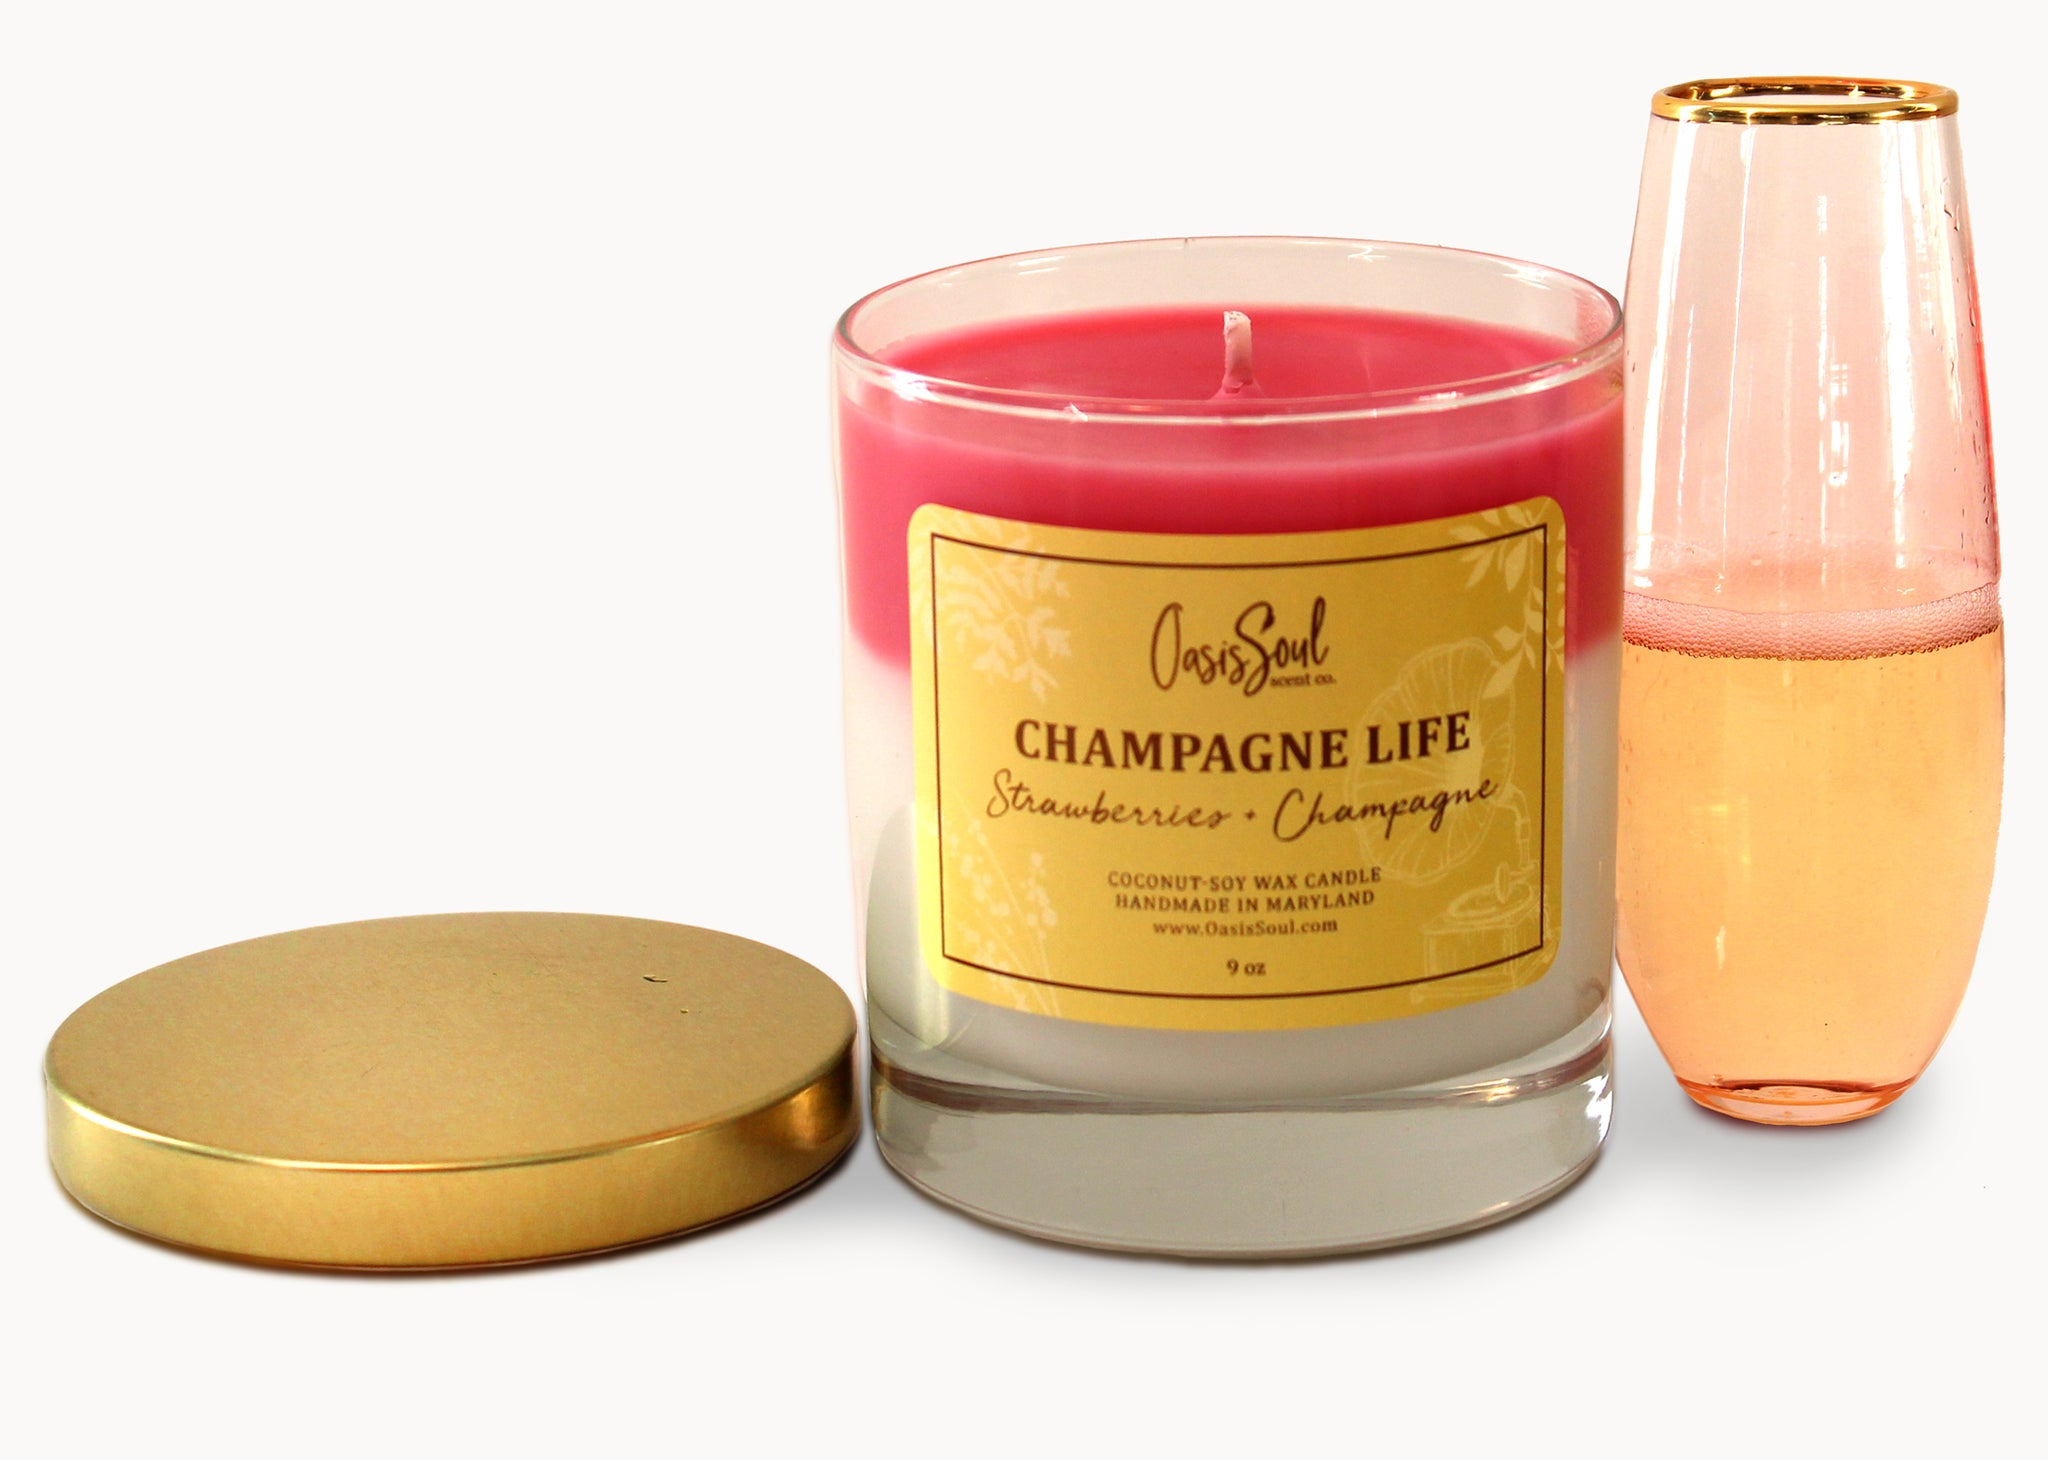 CHAMPAGNE LIFE - Celebrate Layered Candle {strawberries + champagne}